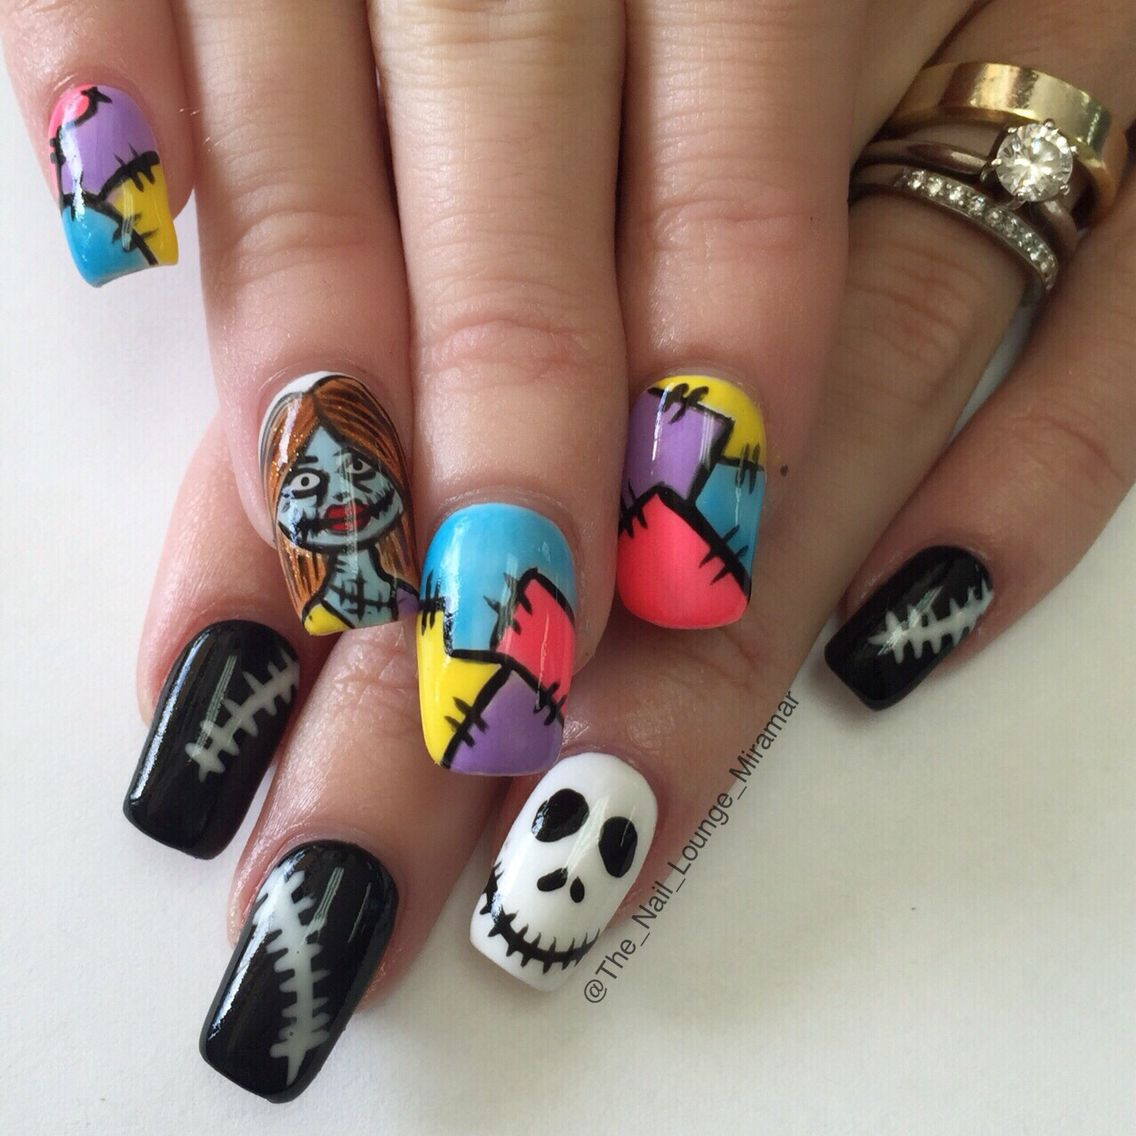 Jack and sally nail art design | Nail Art | Pinterest | Sally and ...